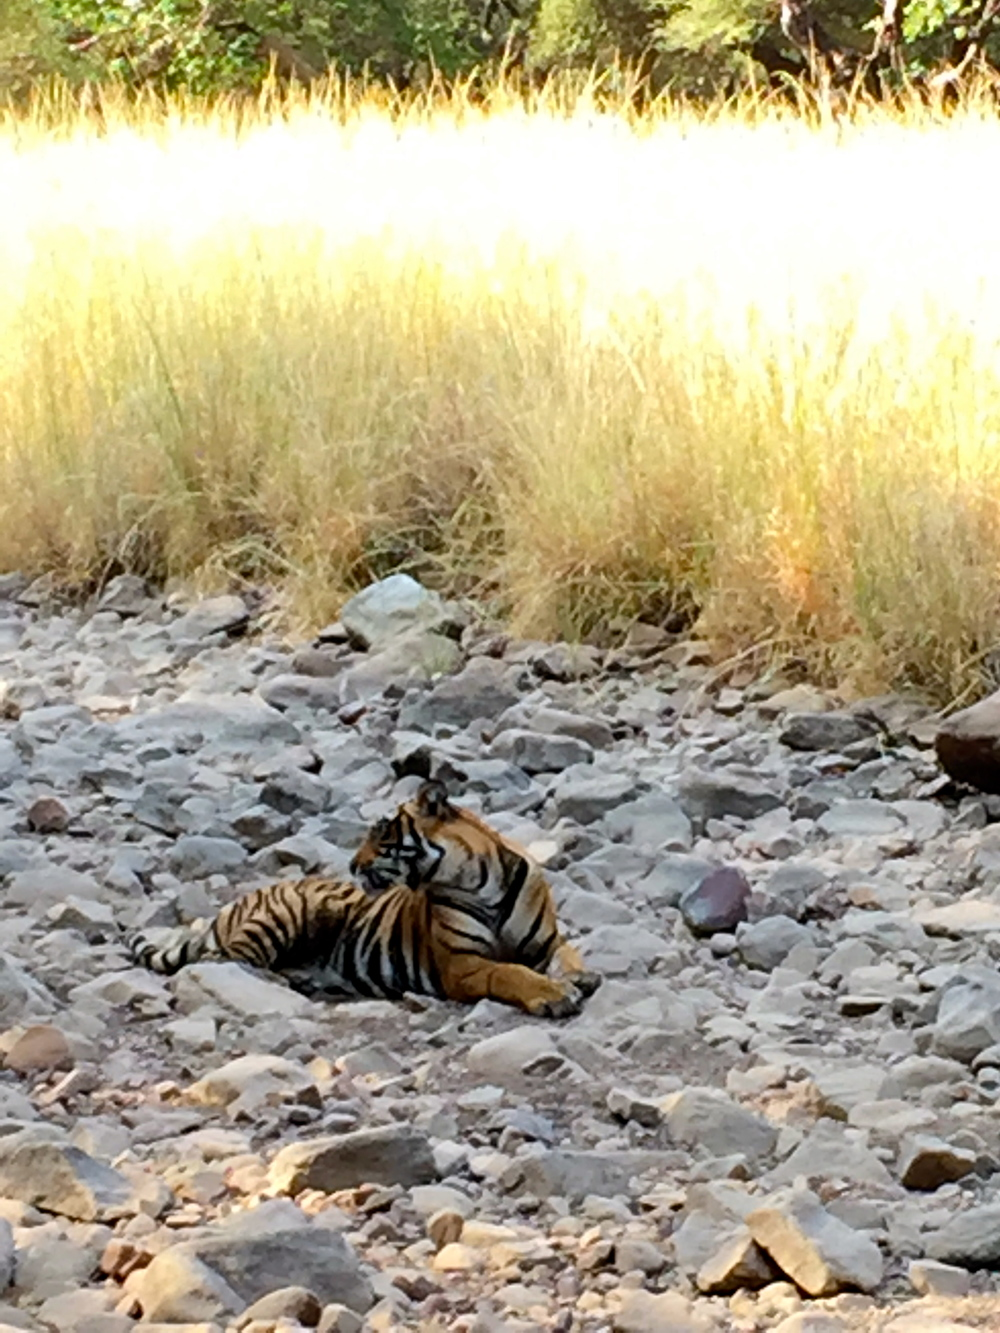 One of the two young male Bengal tigers we viewed on our early morning drive in Rathambore National Park.